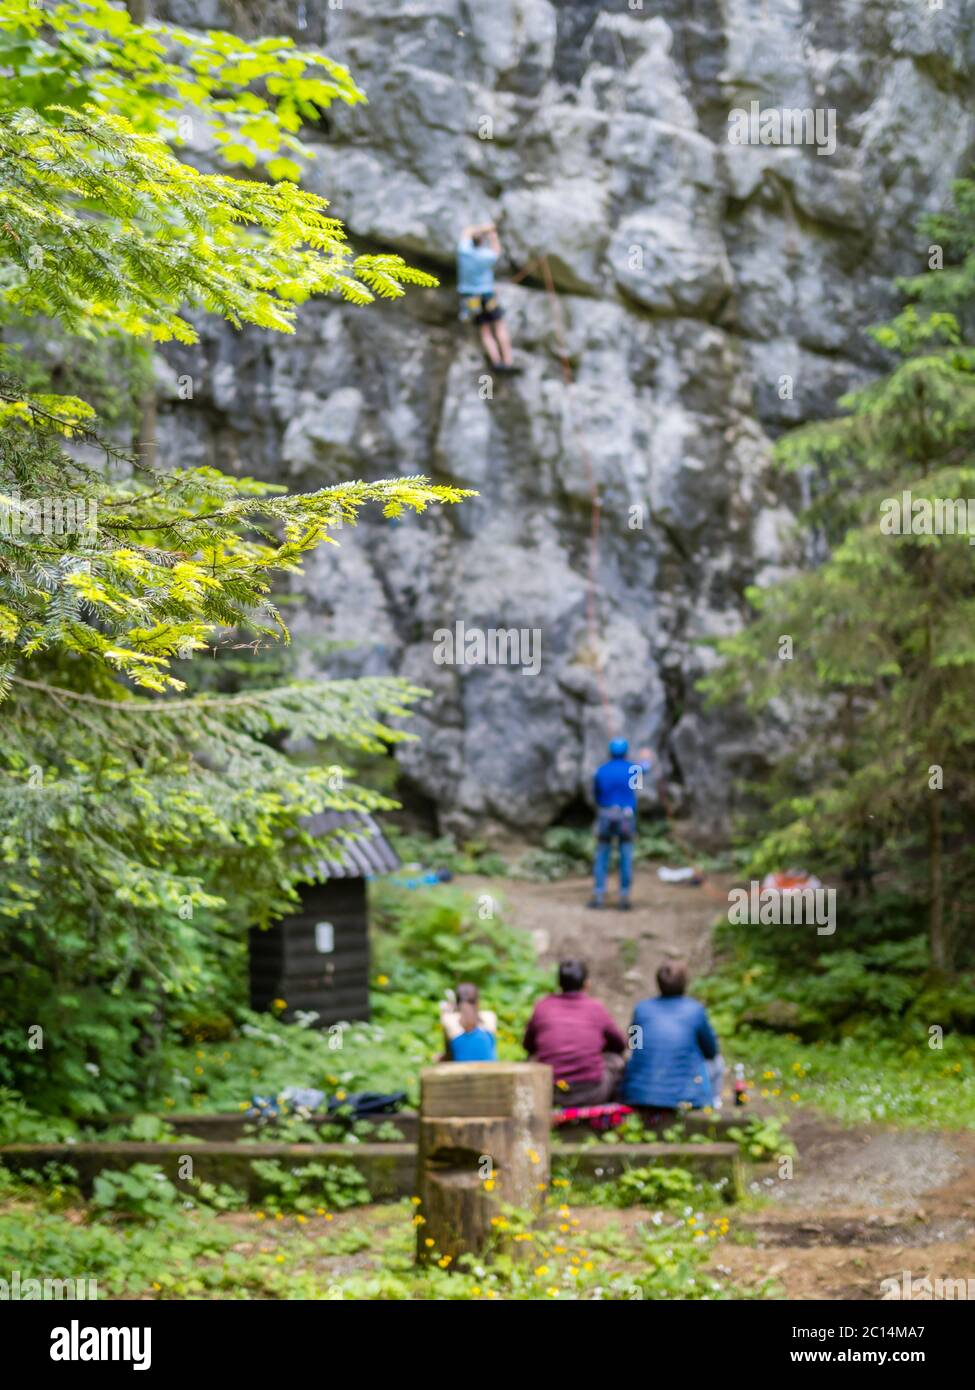 Freeclimbers freeclimbing practising in nature Golubinjak Lokve Croatia Europe people are intentionally out of focus slightly blurred Stock Photo